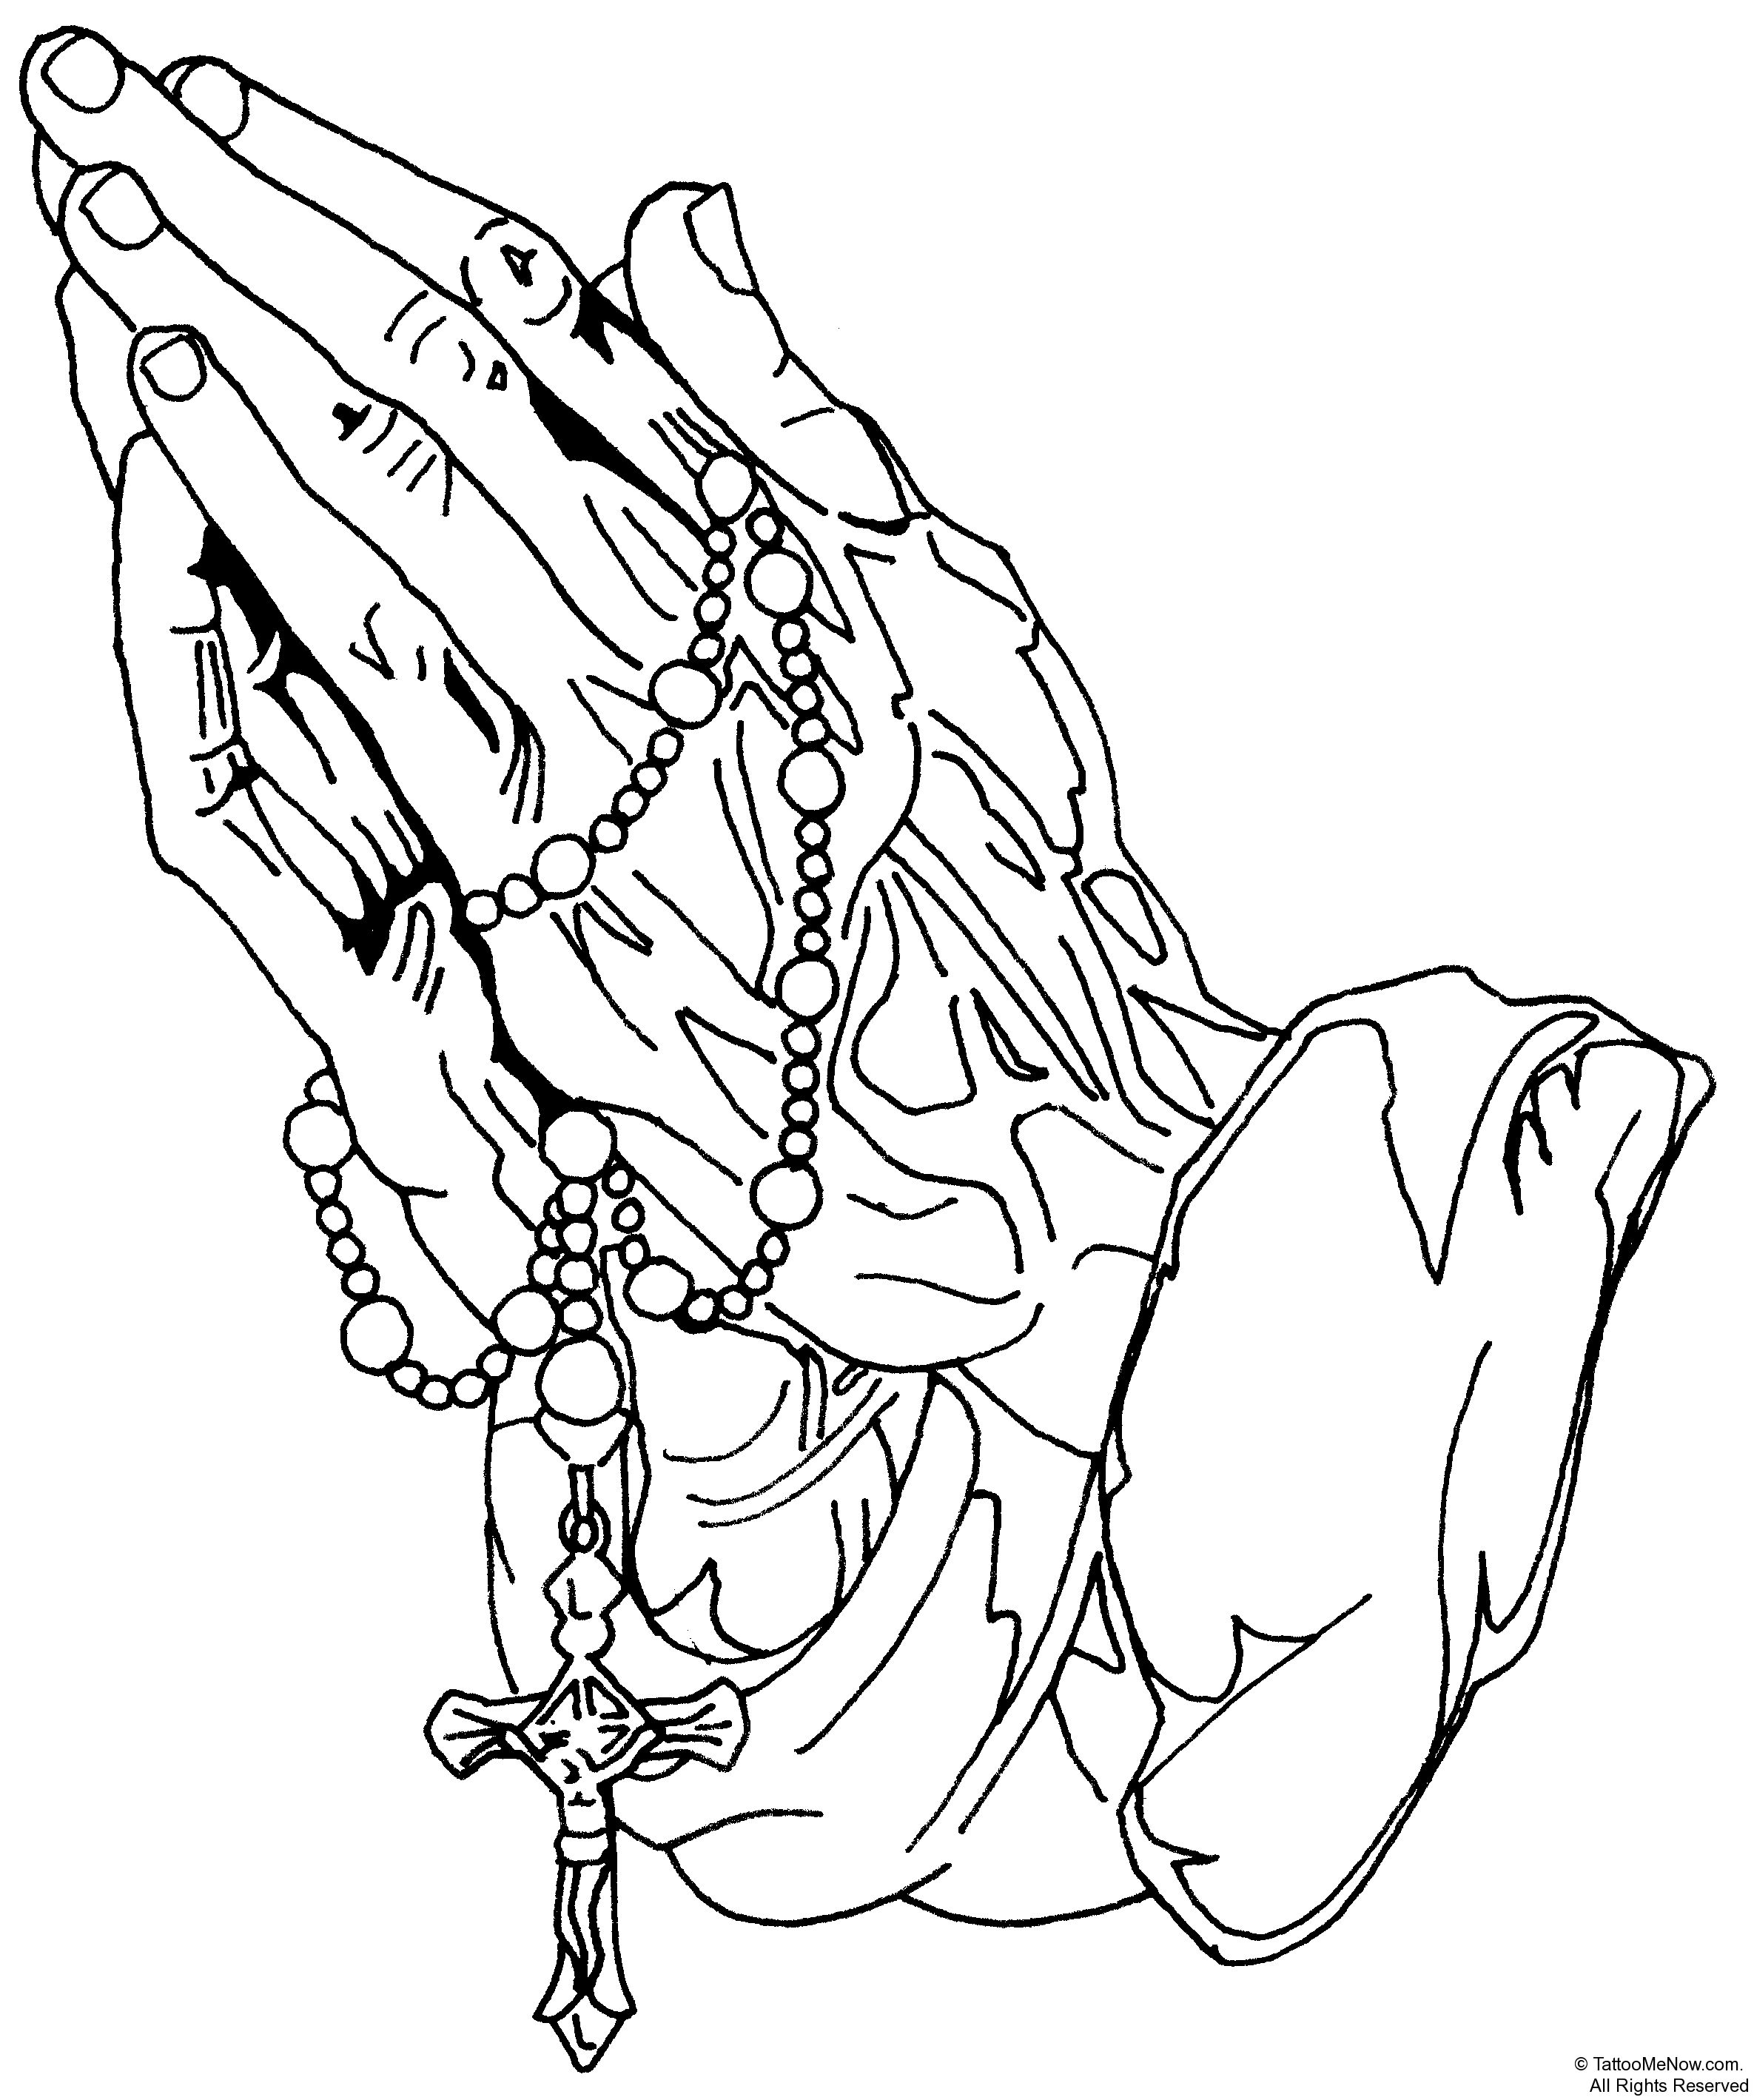 drawings of praying hands